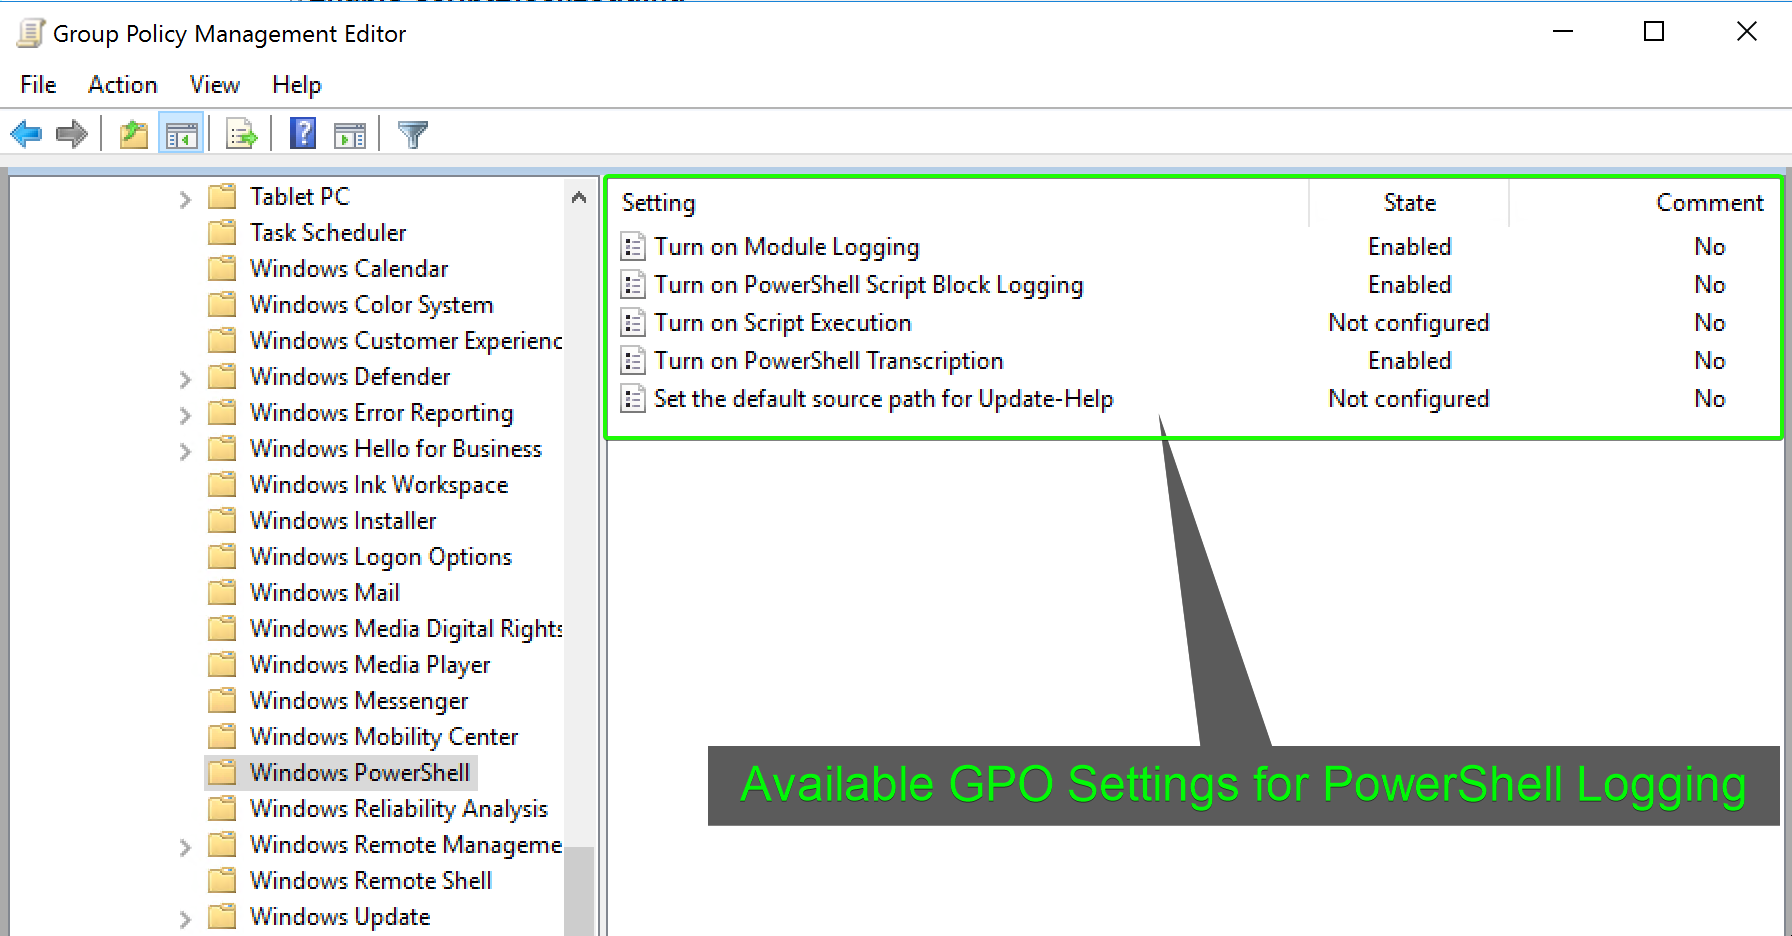 View of Available GPO Settings